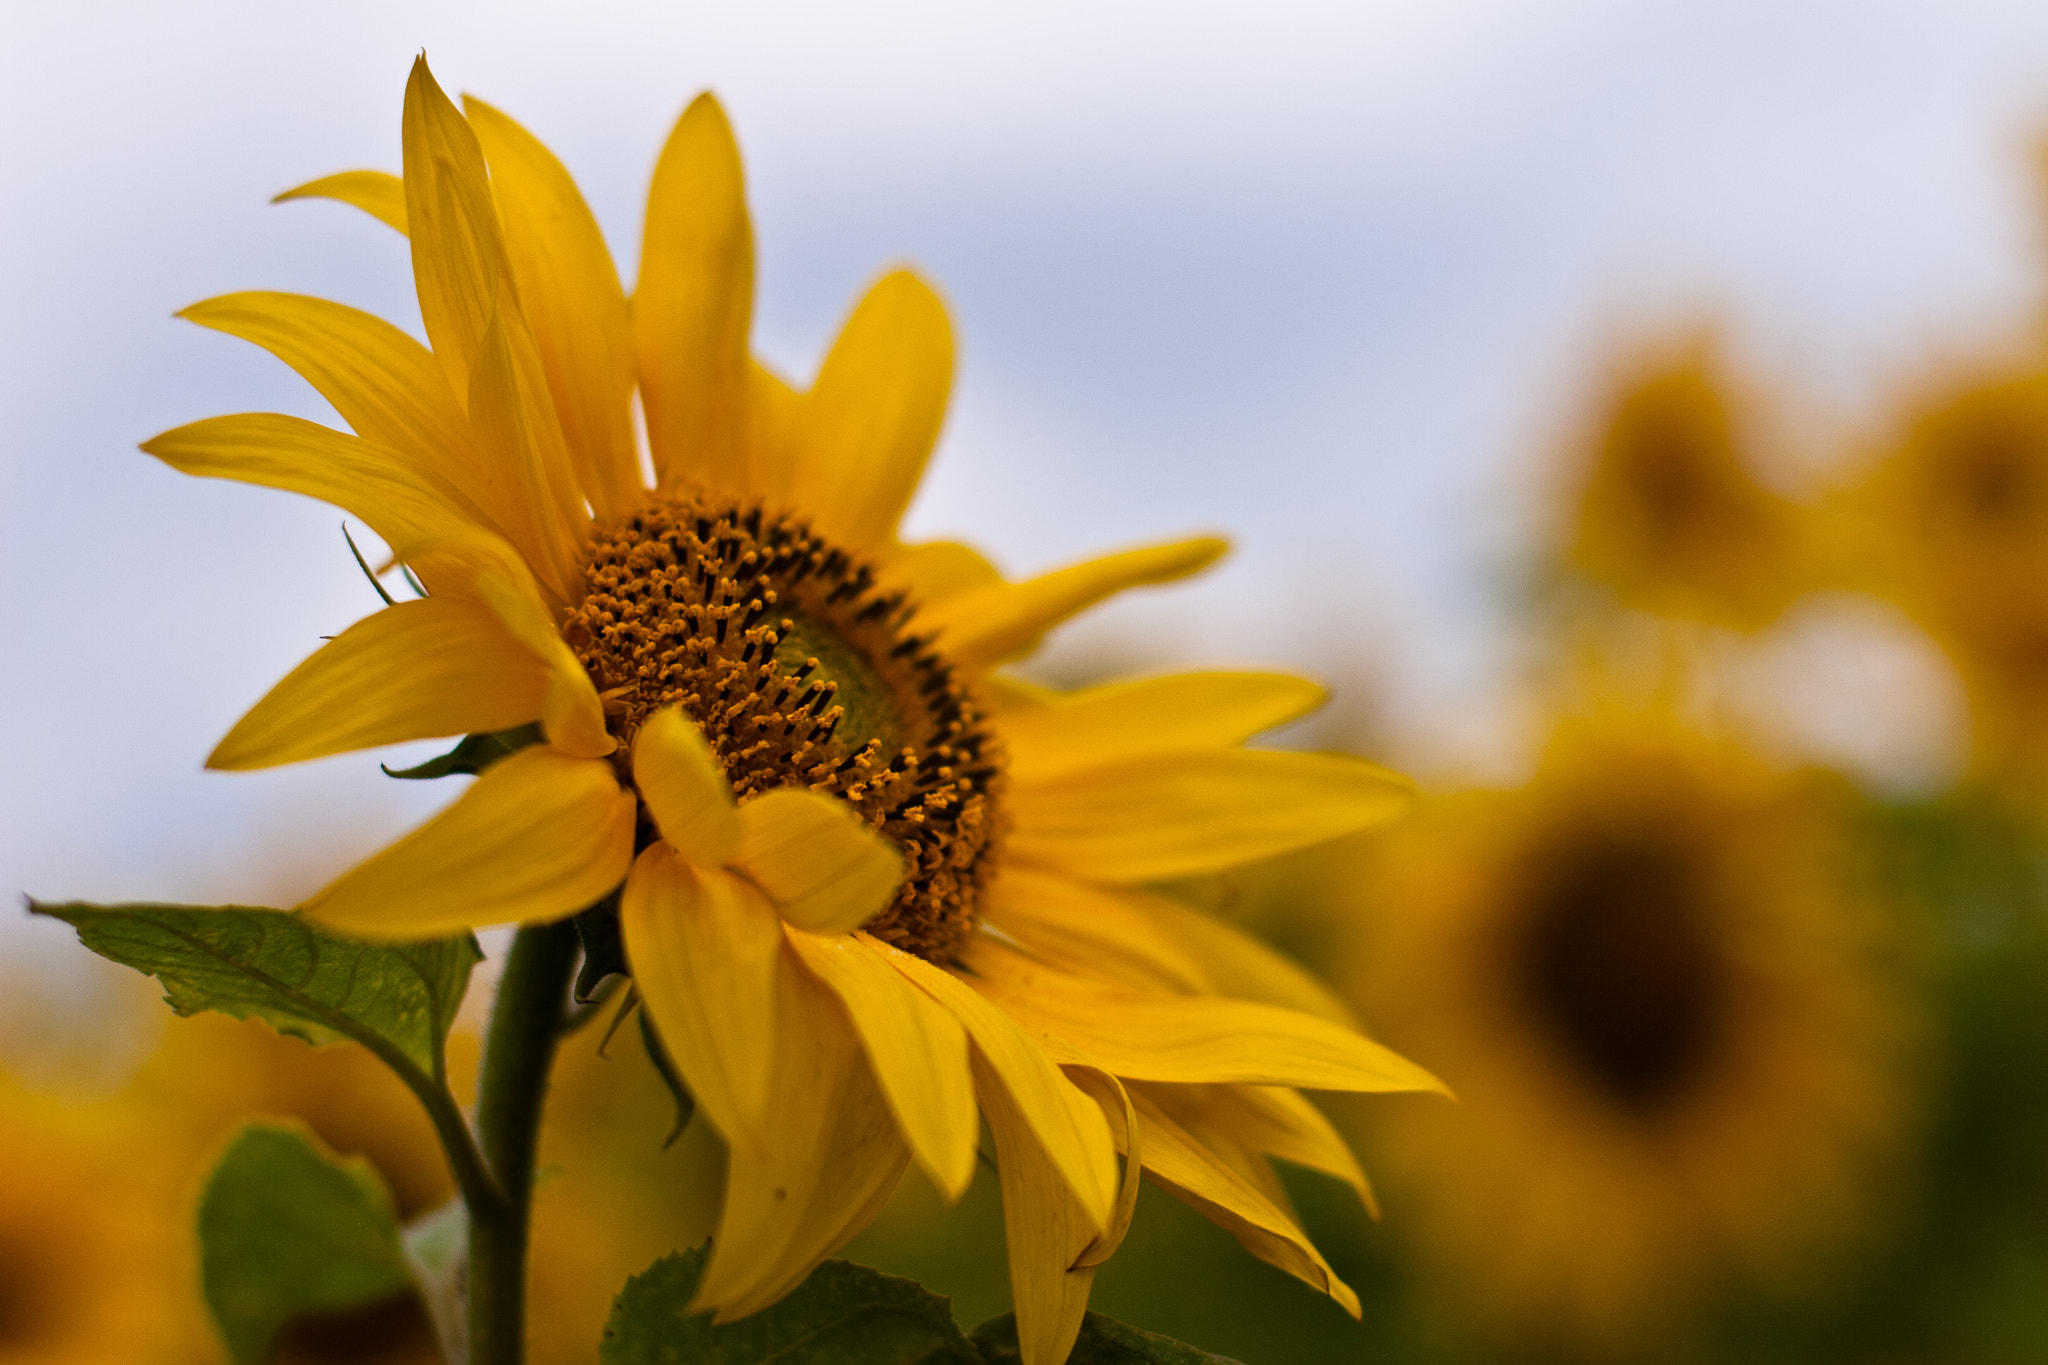 Photograph Sunflowers of Nakagusuku by David Edenfield on 500px